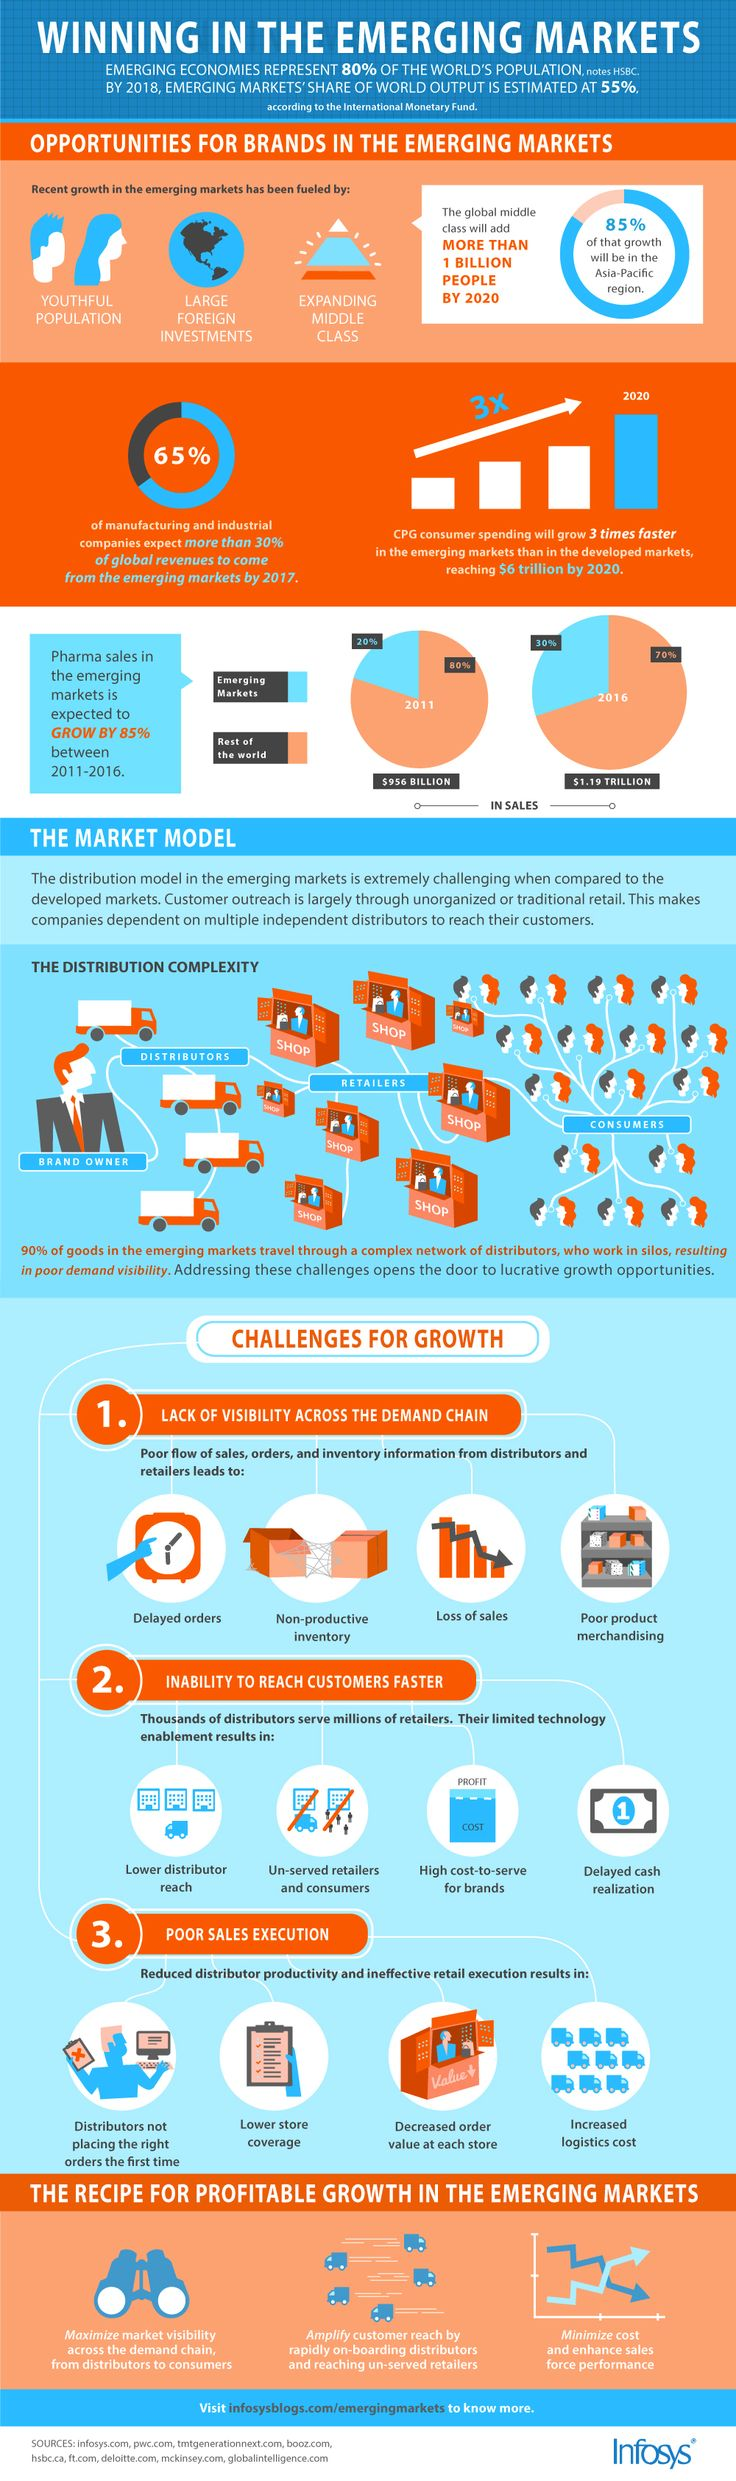 How to Increase Profitable Growth in the Emerging Global Economies